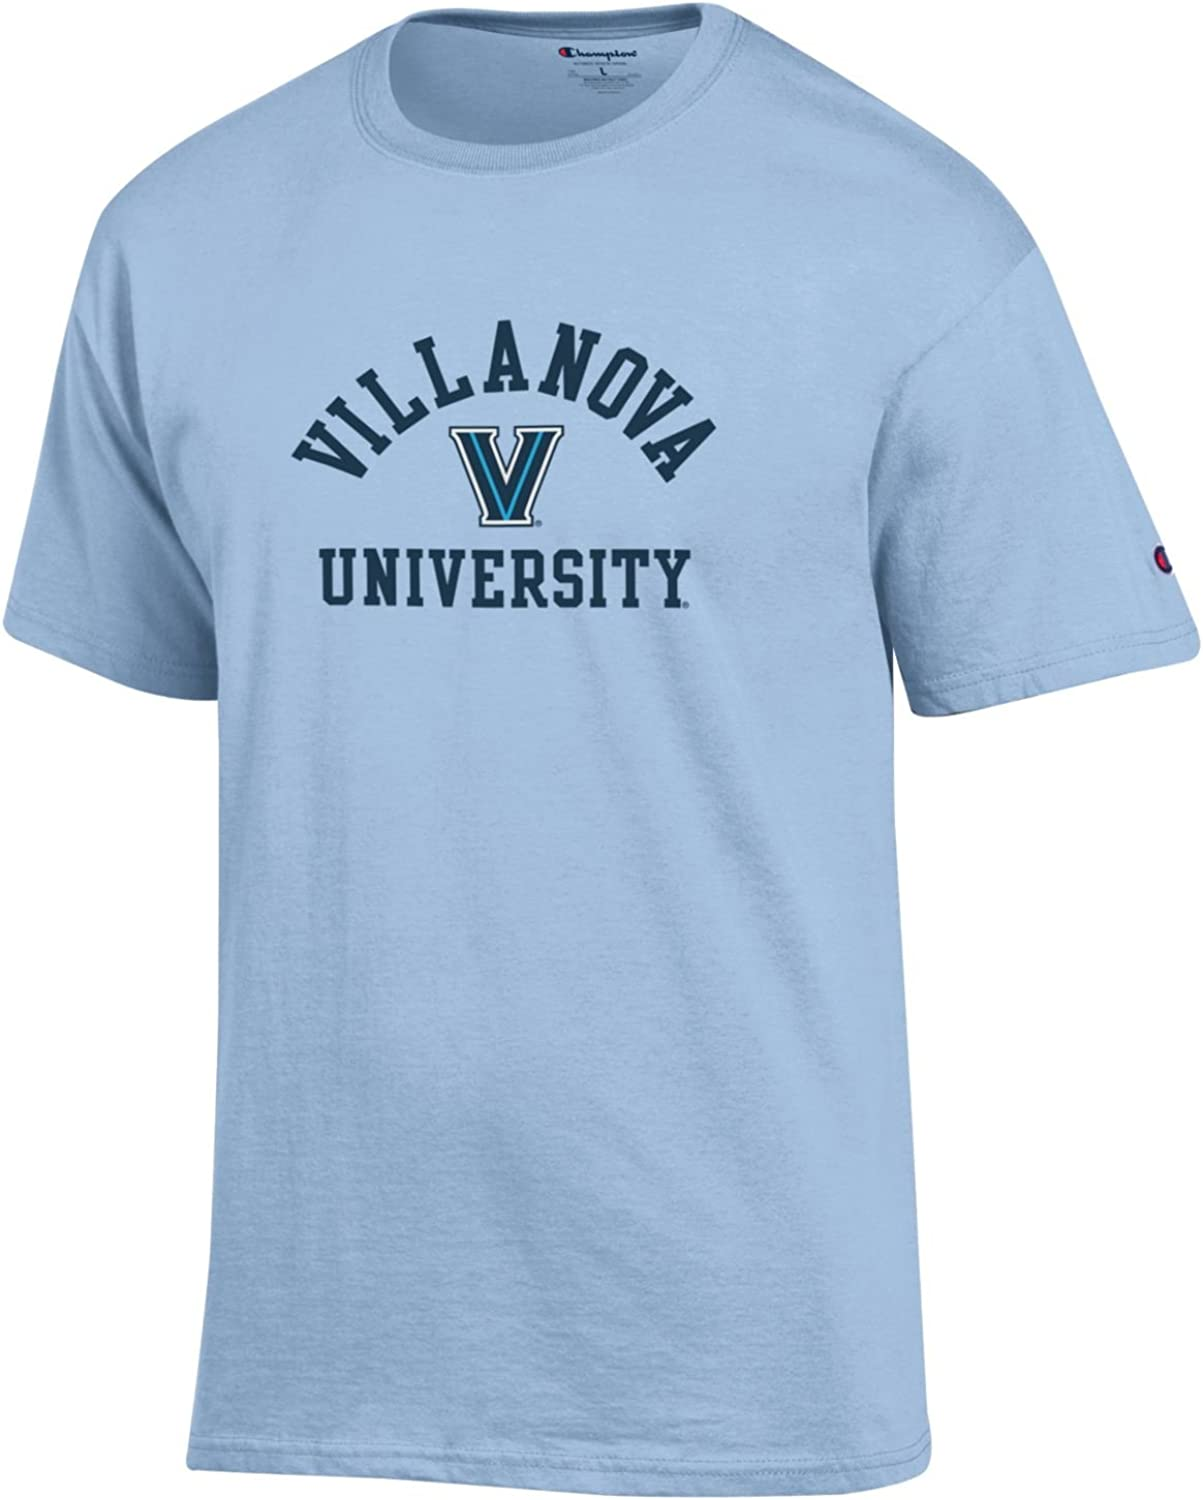 Villanova University Wildcats NCAA T-Shirt Light Blue